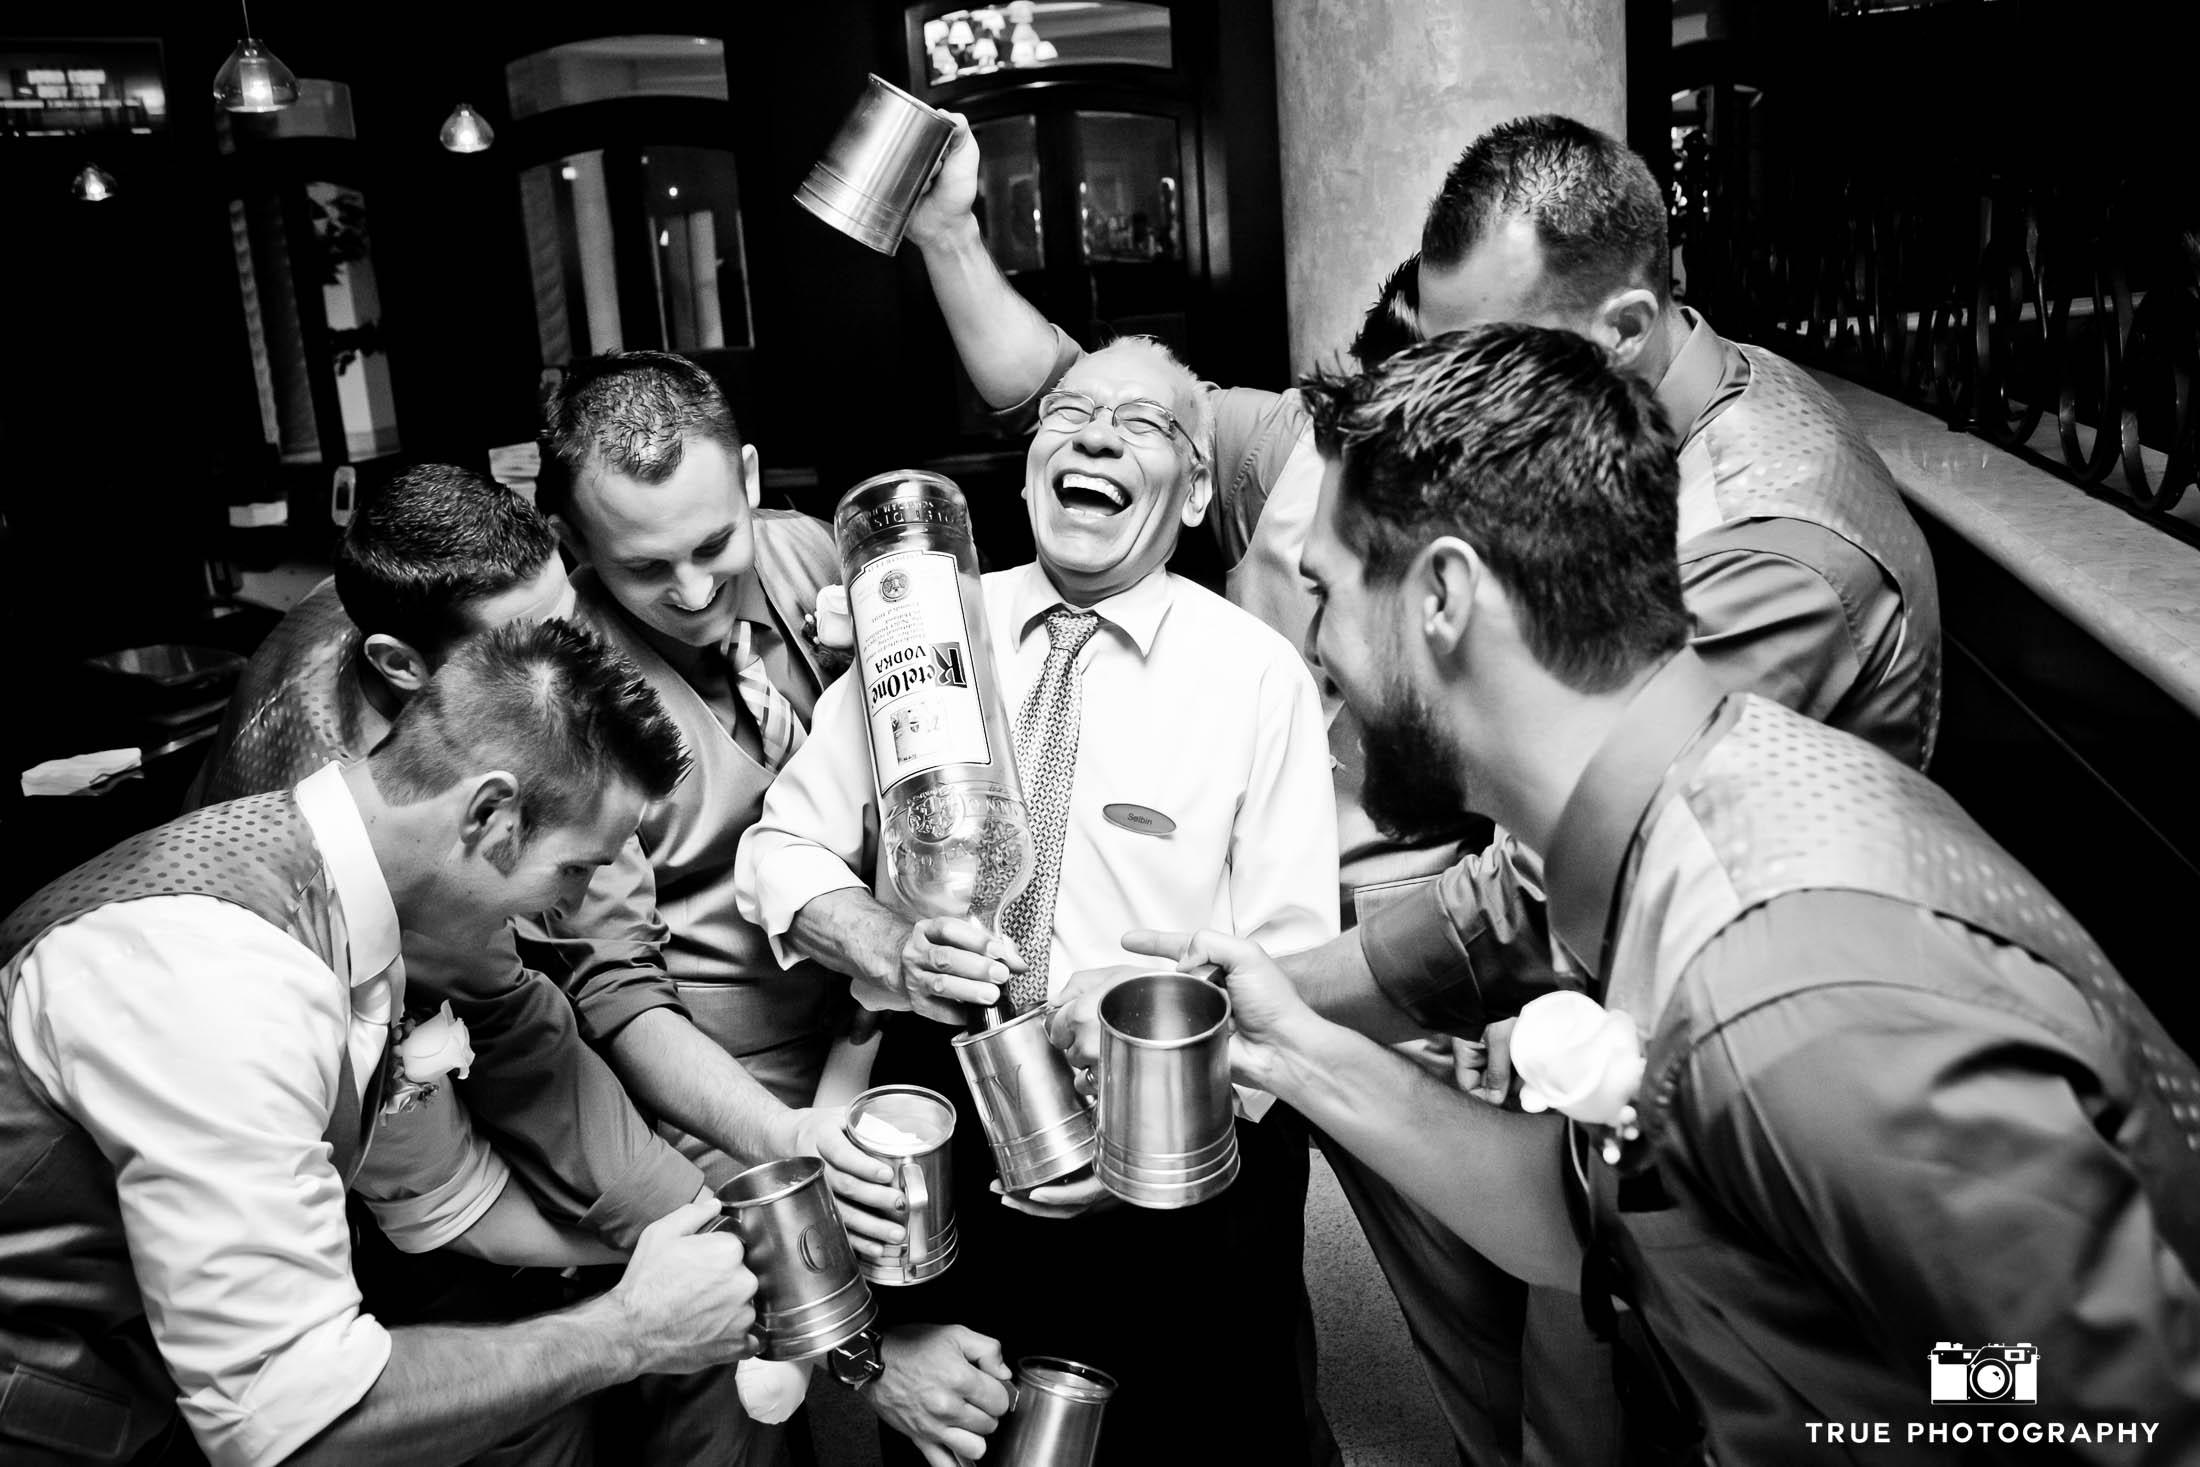 Funny, candid moment of Groomsmen with Dad drinking big bottle of liquor at wedding reception